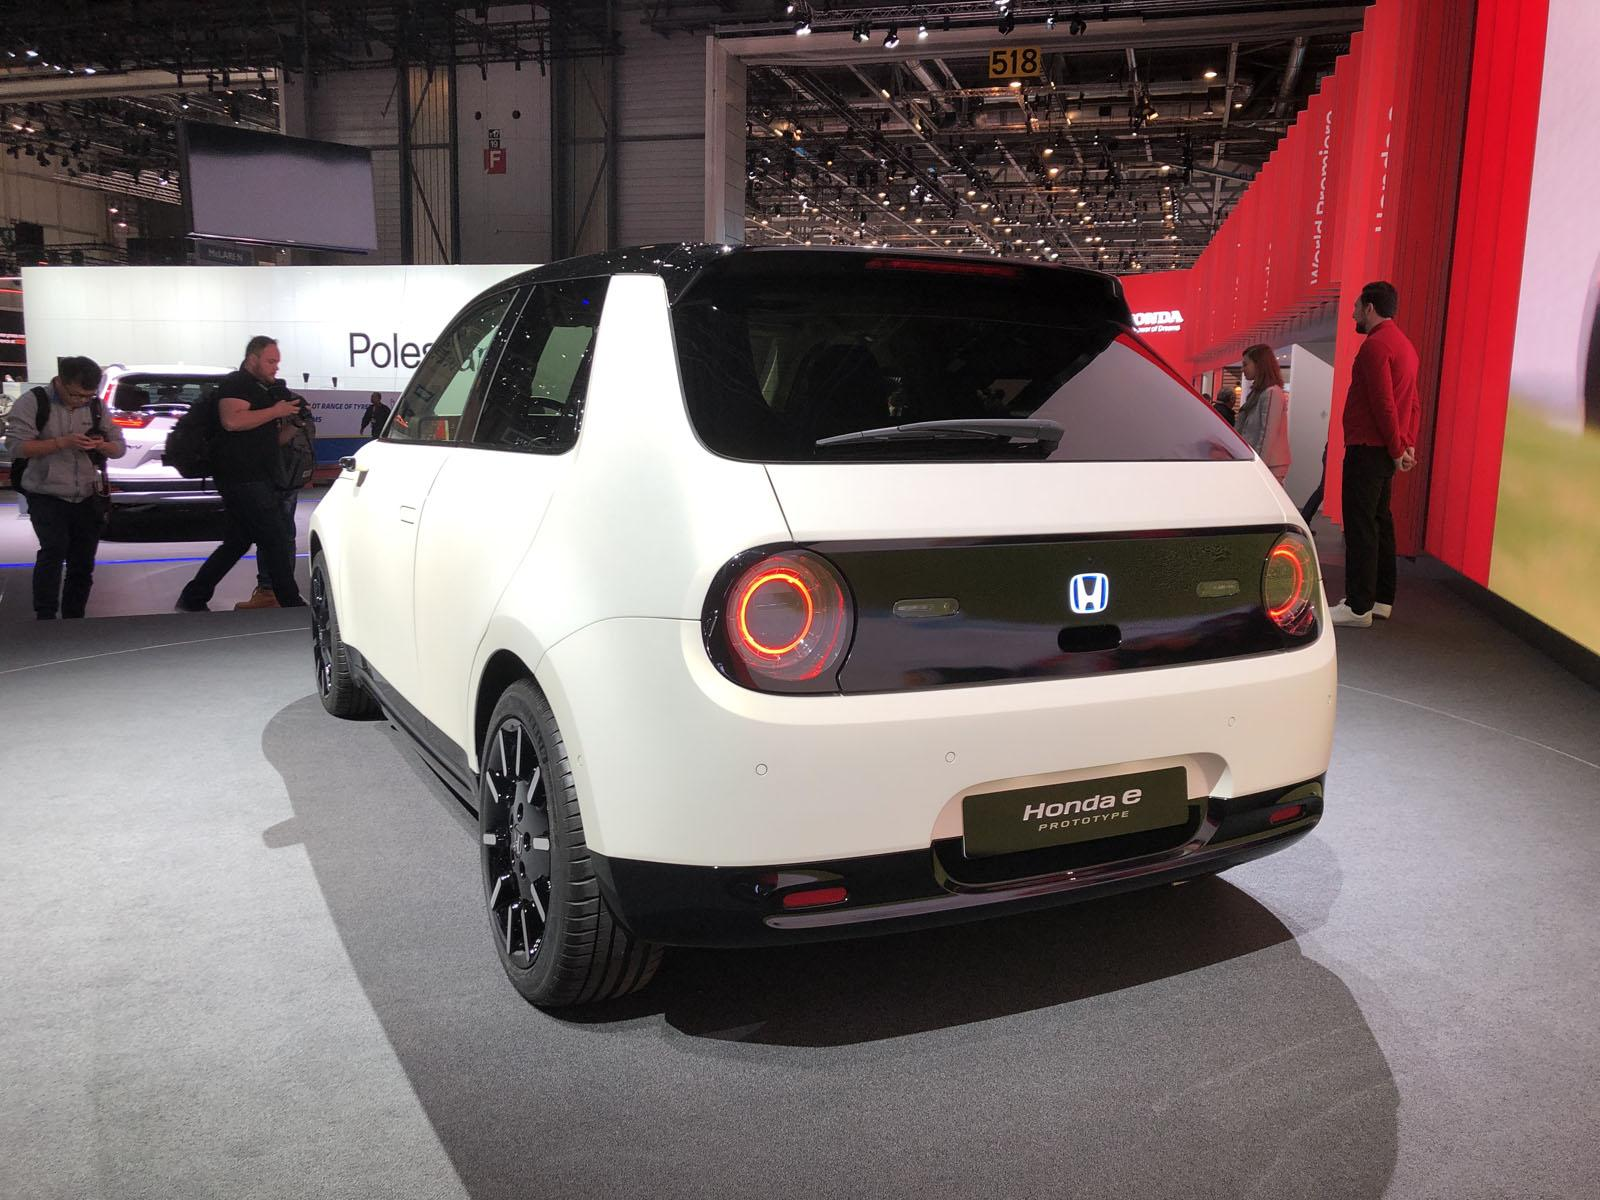 Honda e Prototype Pictures And Info From The Geneva Auto Show ...